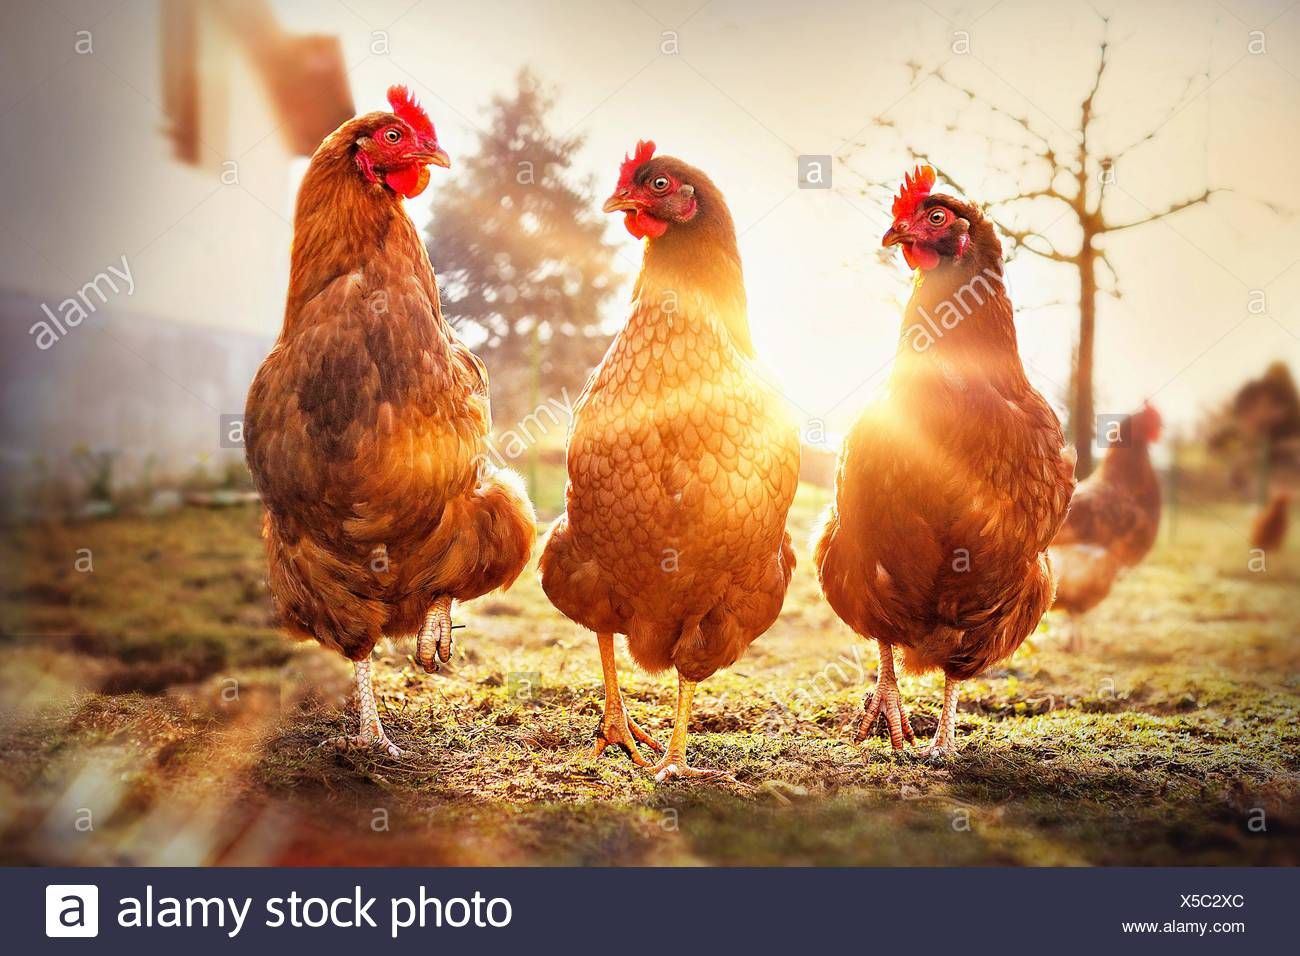 chicken - Stock Image